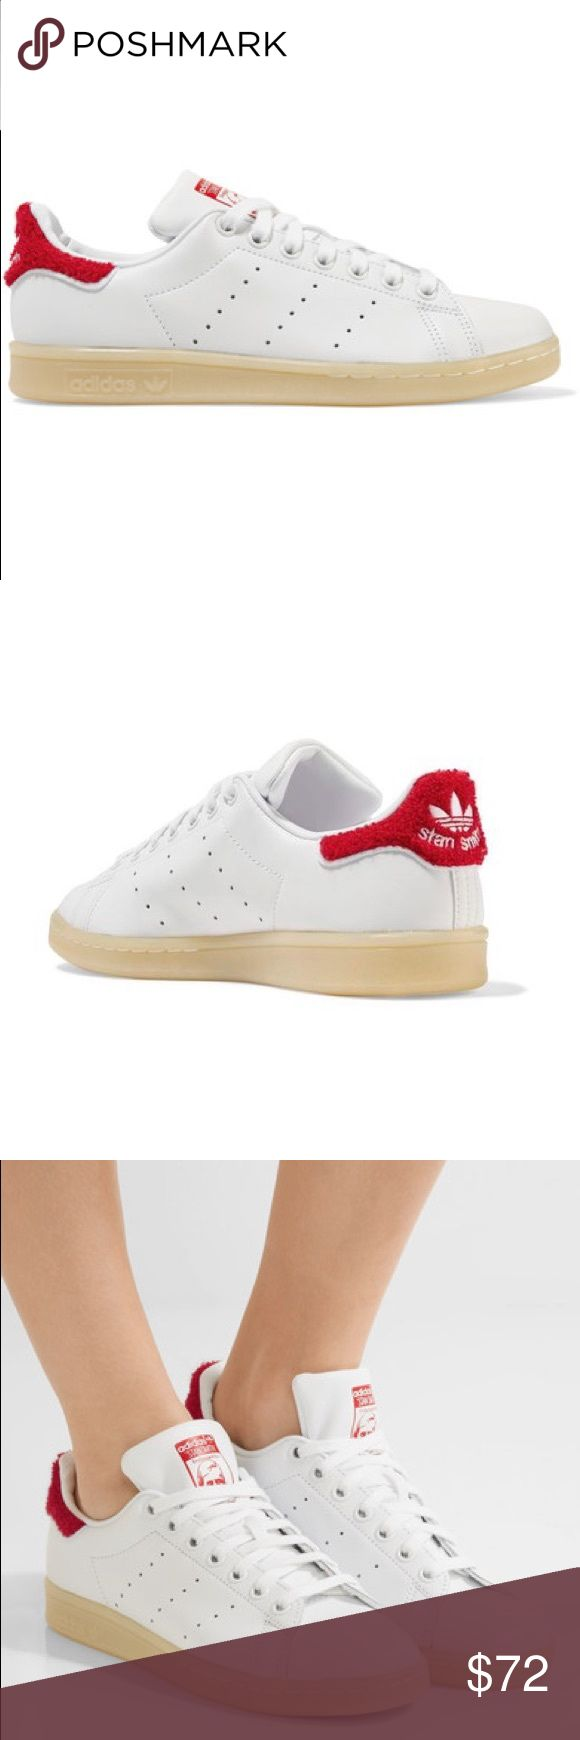 """Adidas Originals Stan Smith Leather Sneakers NIB. Adidas Originals Stan Smith Winter terry trimmed leather sneakers.   •Terry - trimmed heel tab finished with signature perforations and vulcanized rubber sole. •Sole measures approximately 1 inch. •White leather, red terry •Lace up front •Designer color: Collegiate Red  •Approximate heel to toe measurements : 10.5"""" adidas Shoes Sneakers"""